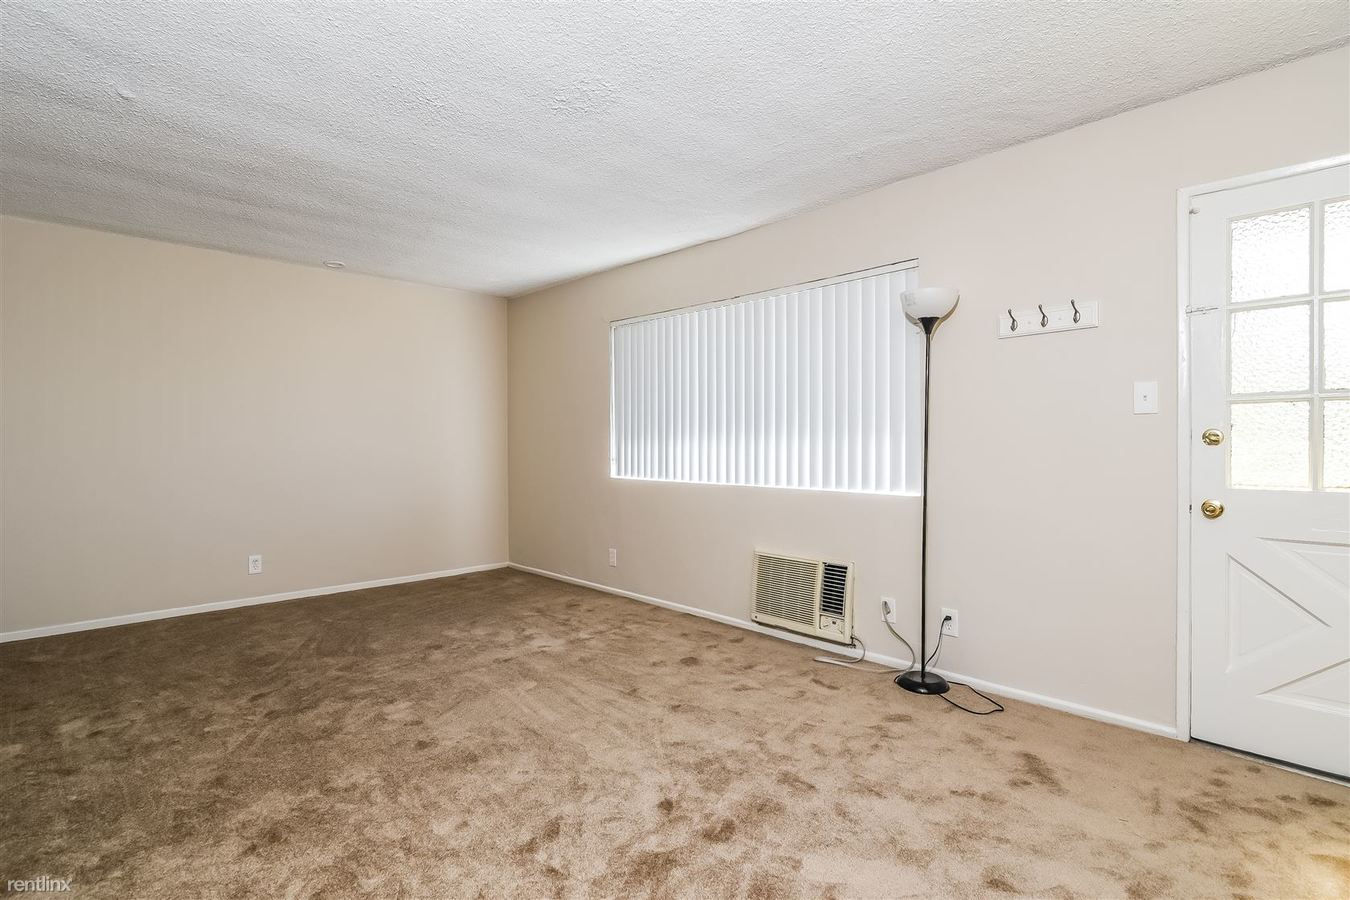 2 Bedrooms 1 Bathroom Apartment for rent at Evergreen Pine Apartments in Temple City, CA